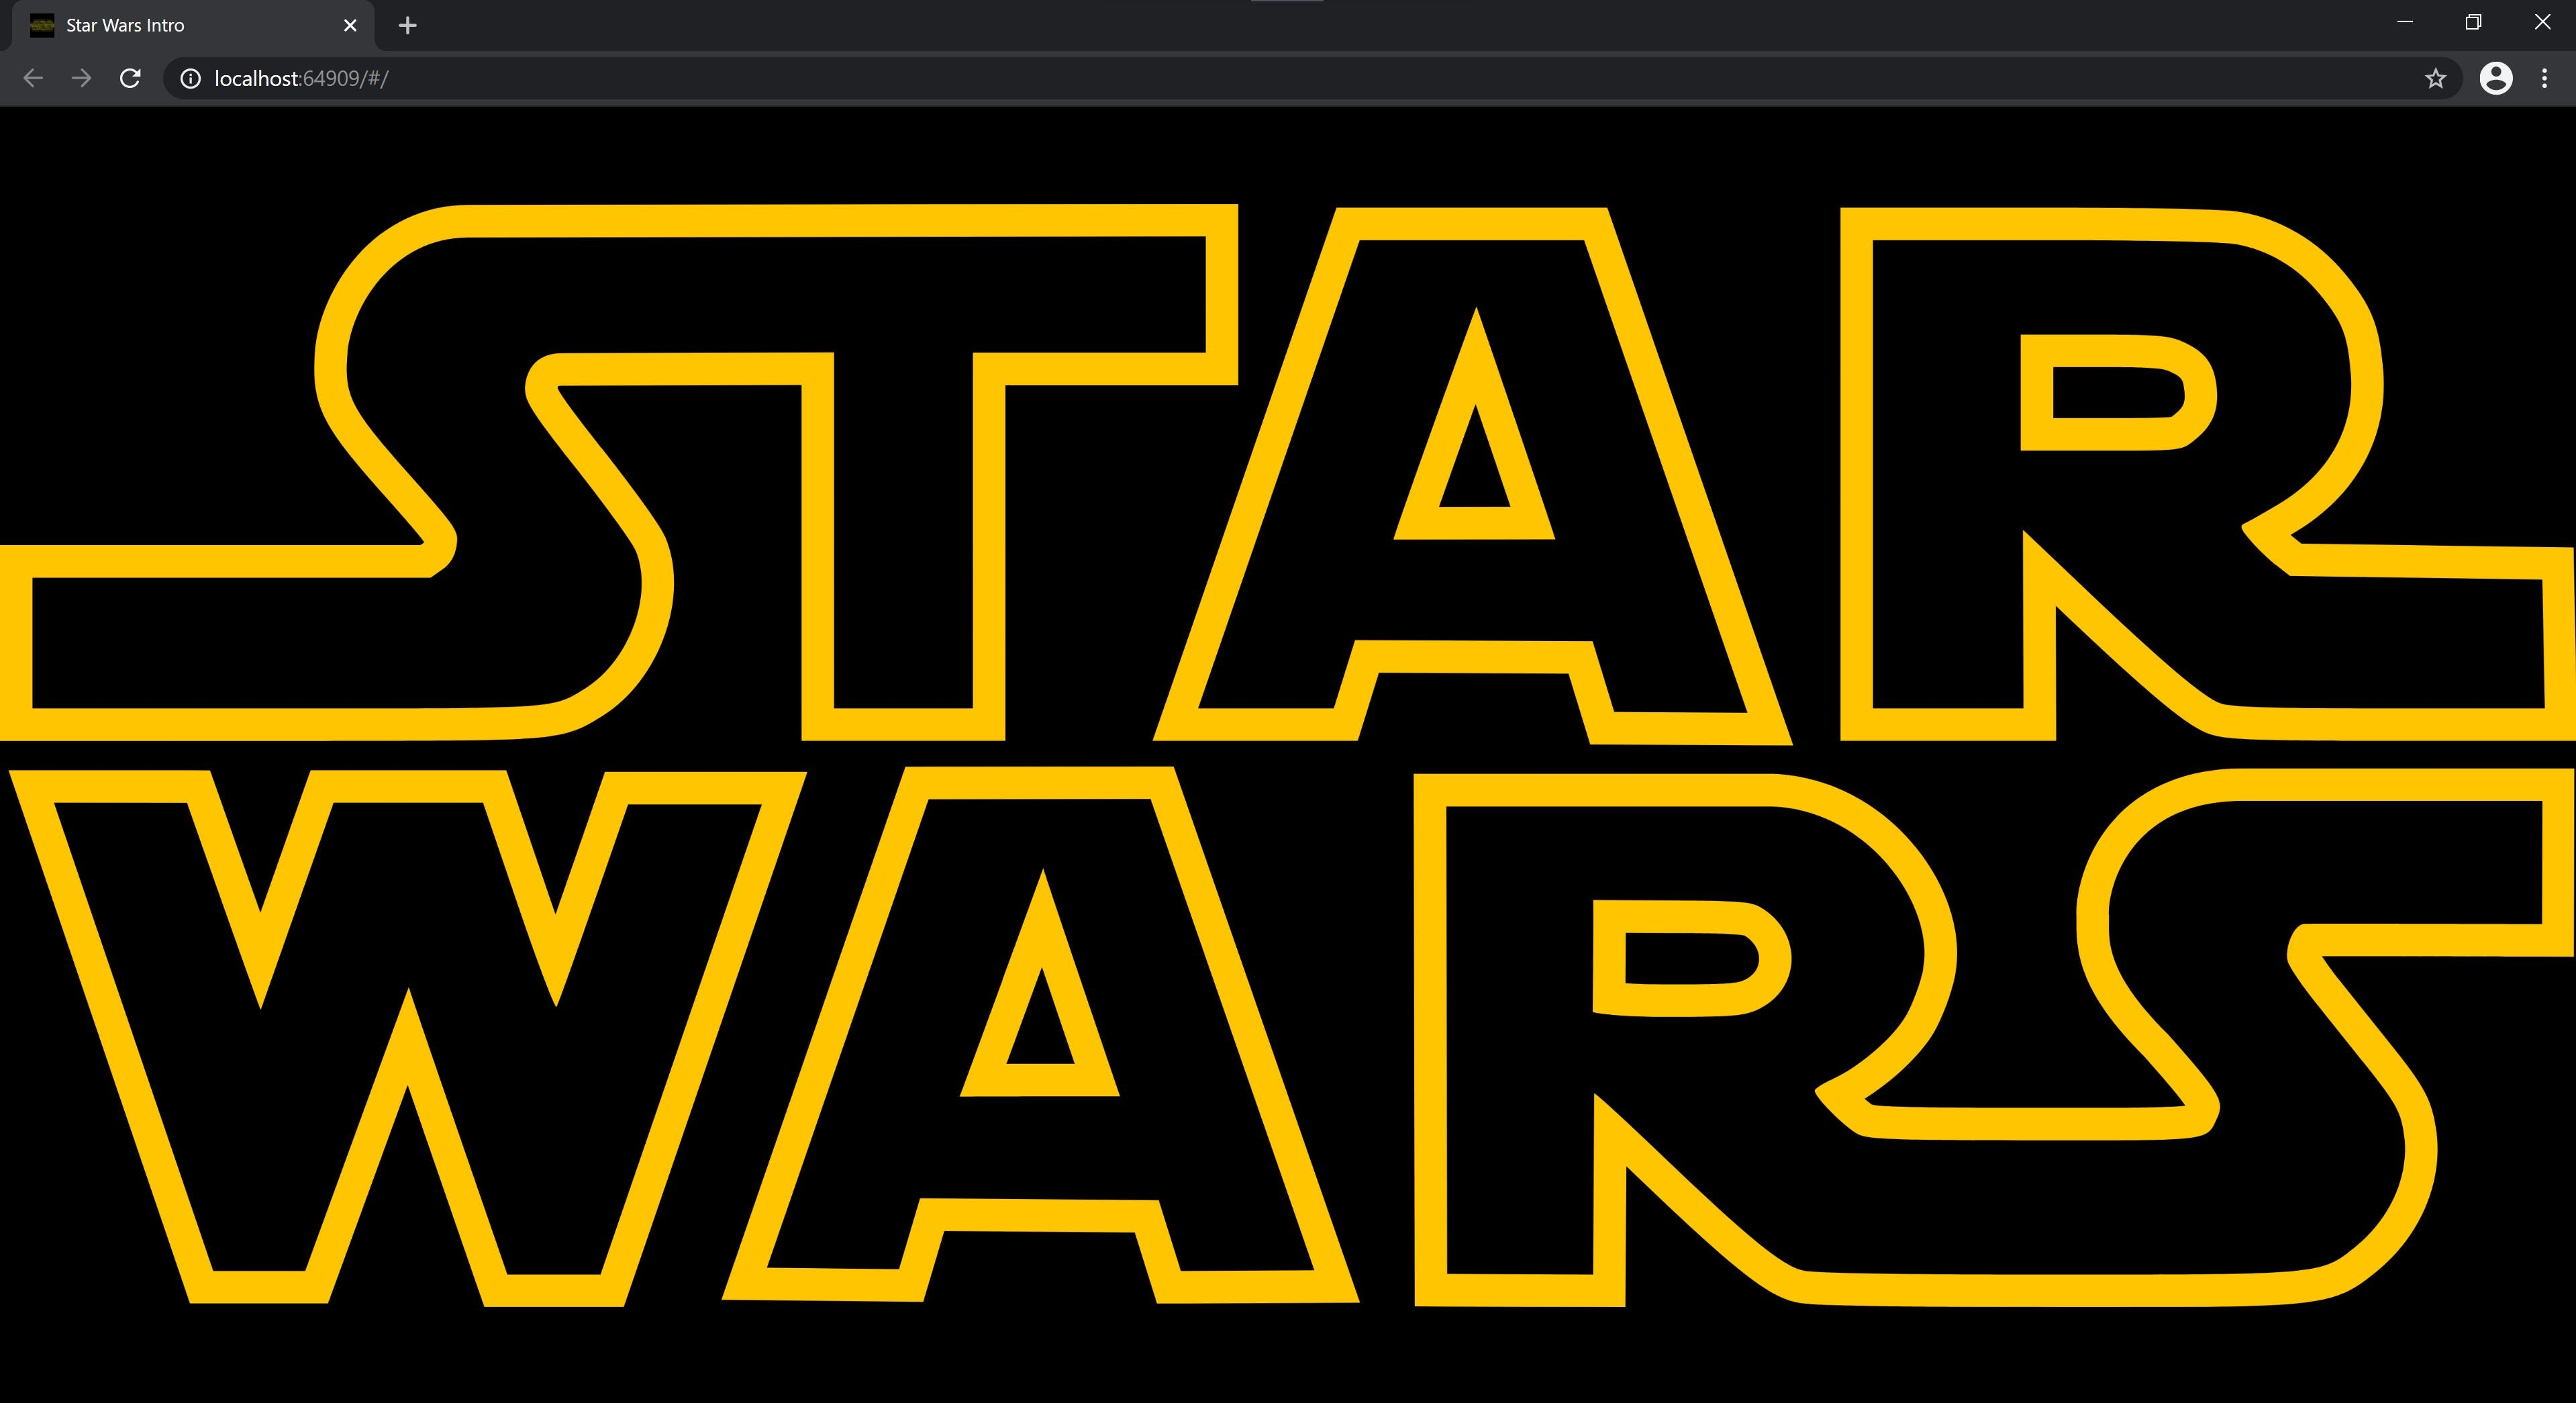 The Star Wars logo showing in a browser window